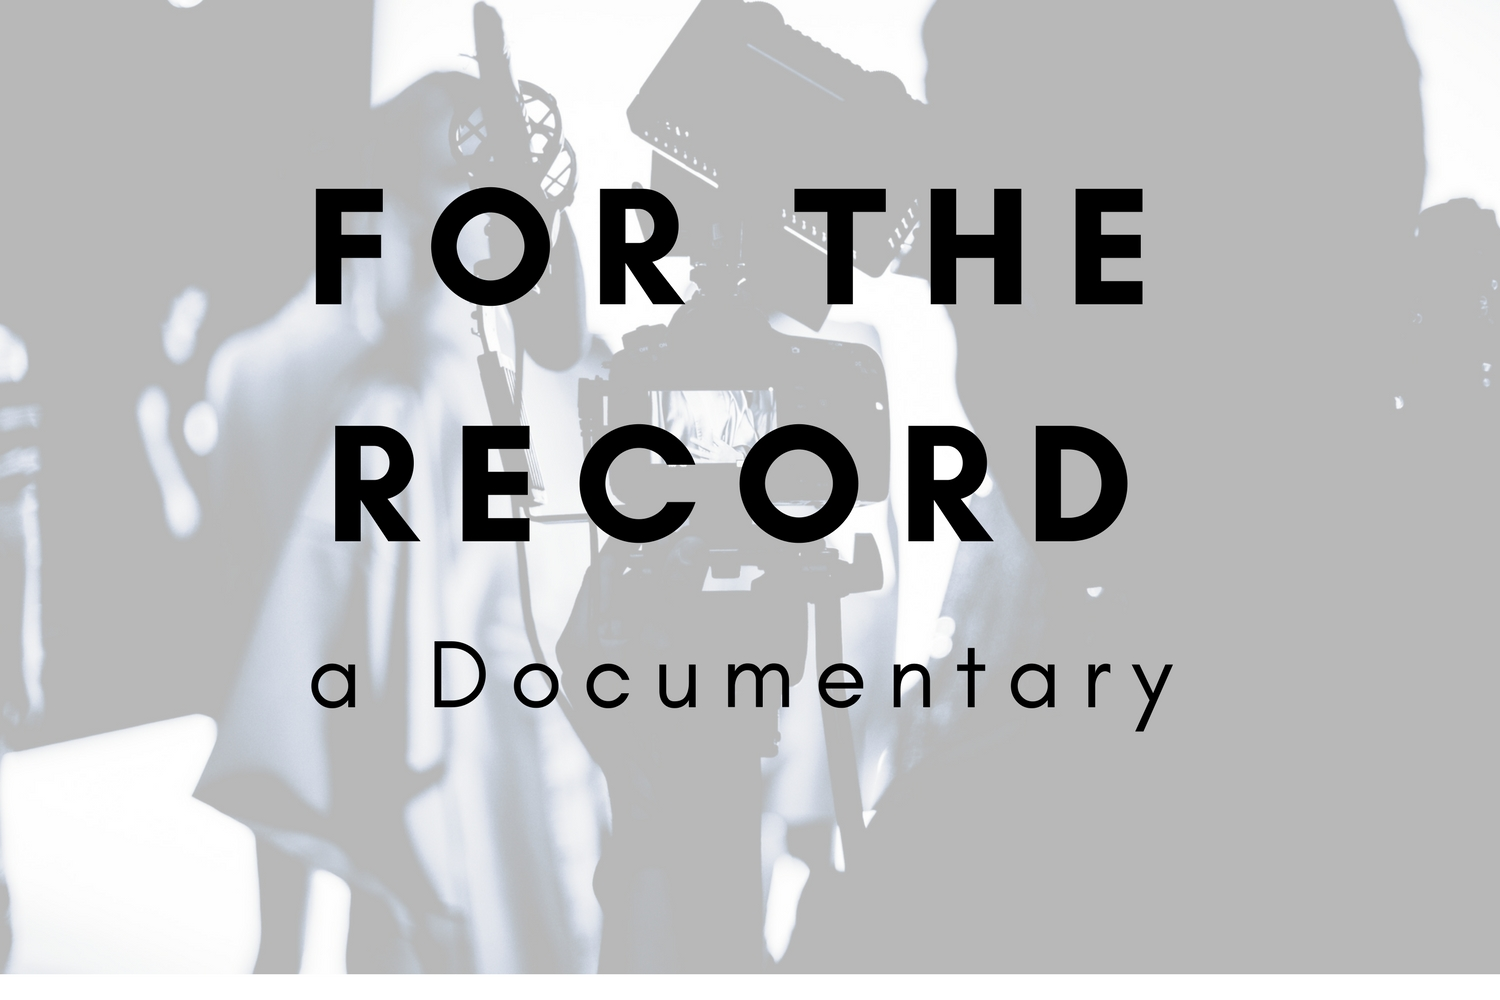 For the Record, a Documentary